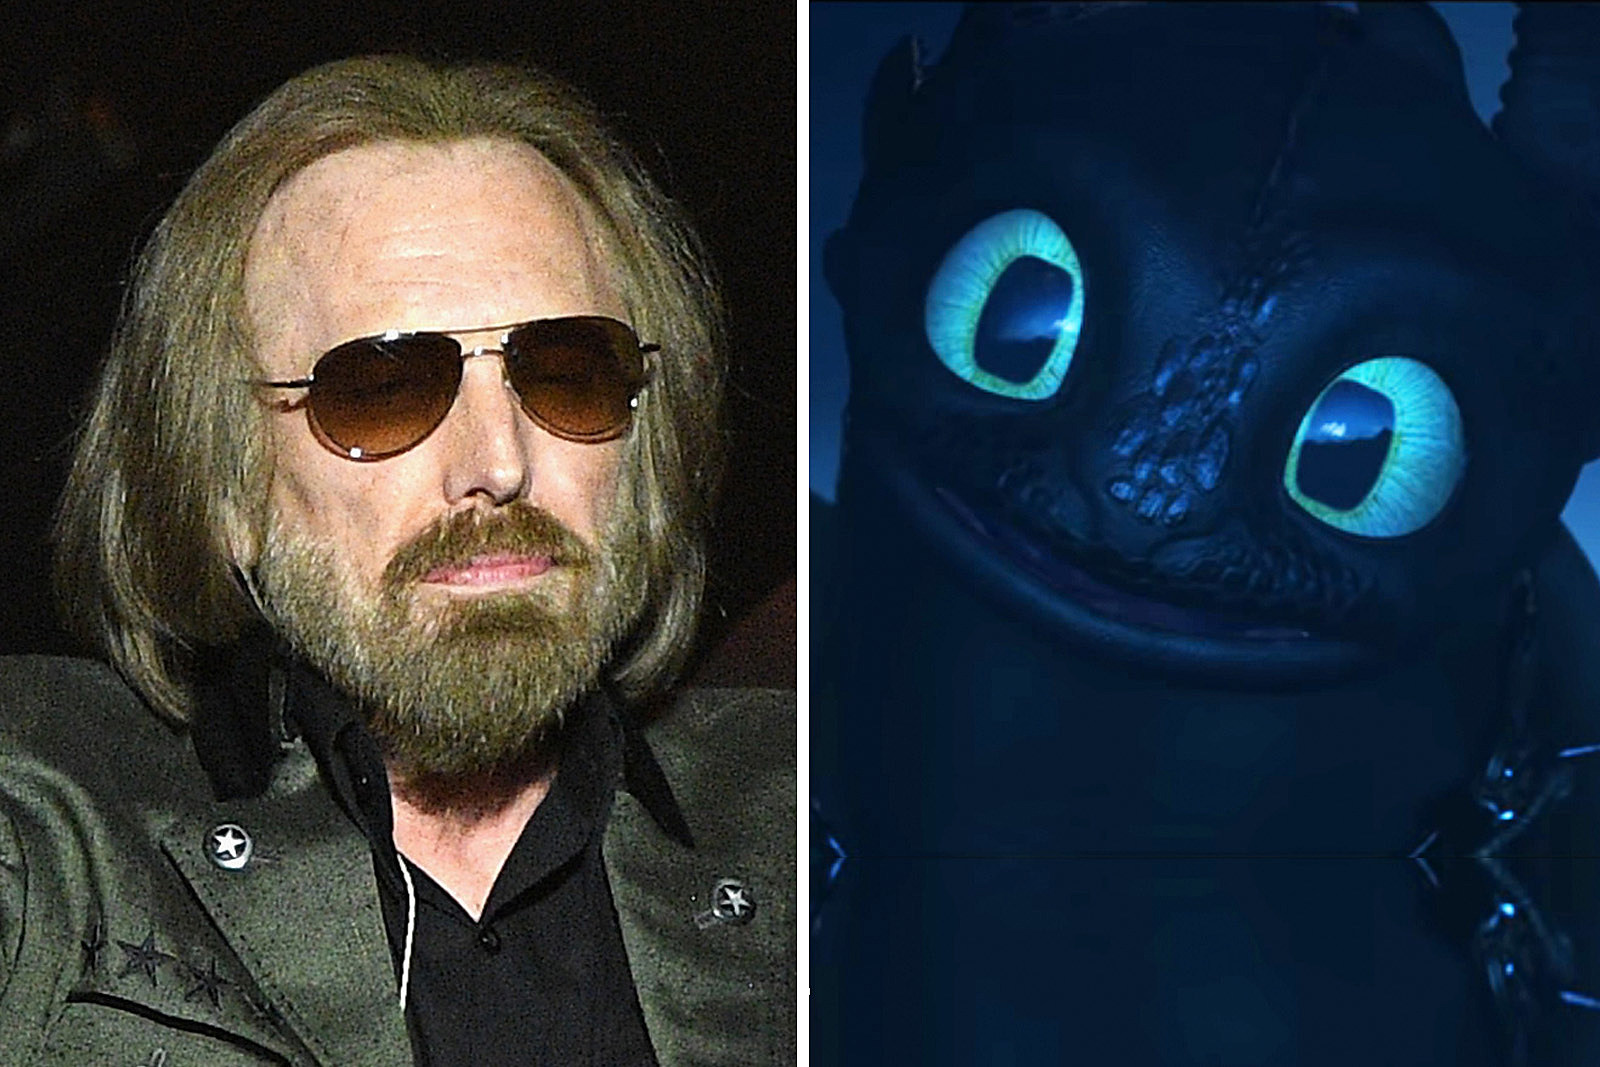 Who's Covering Tom Petty's 'Learning to Fly' in the New 'How to Train Your Dragon' Trailer?